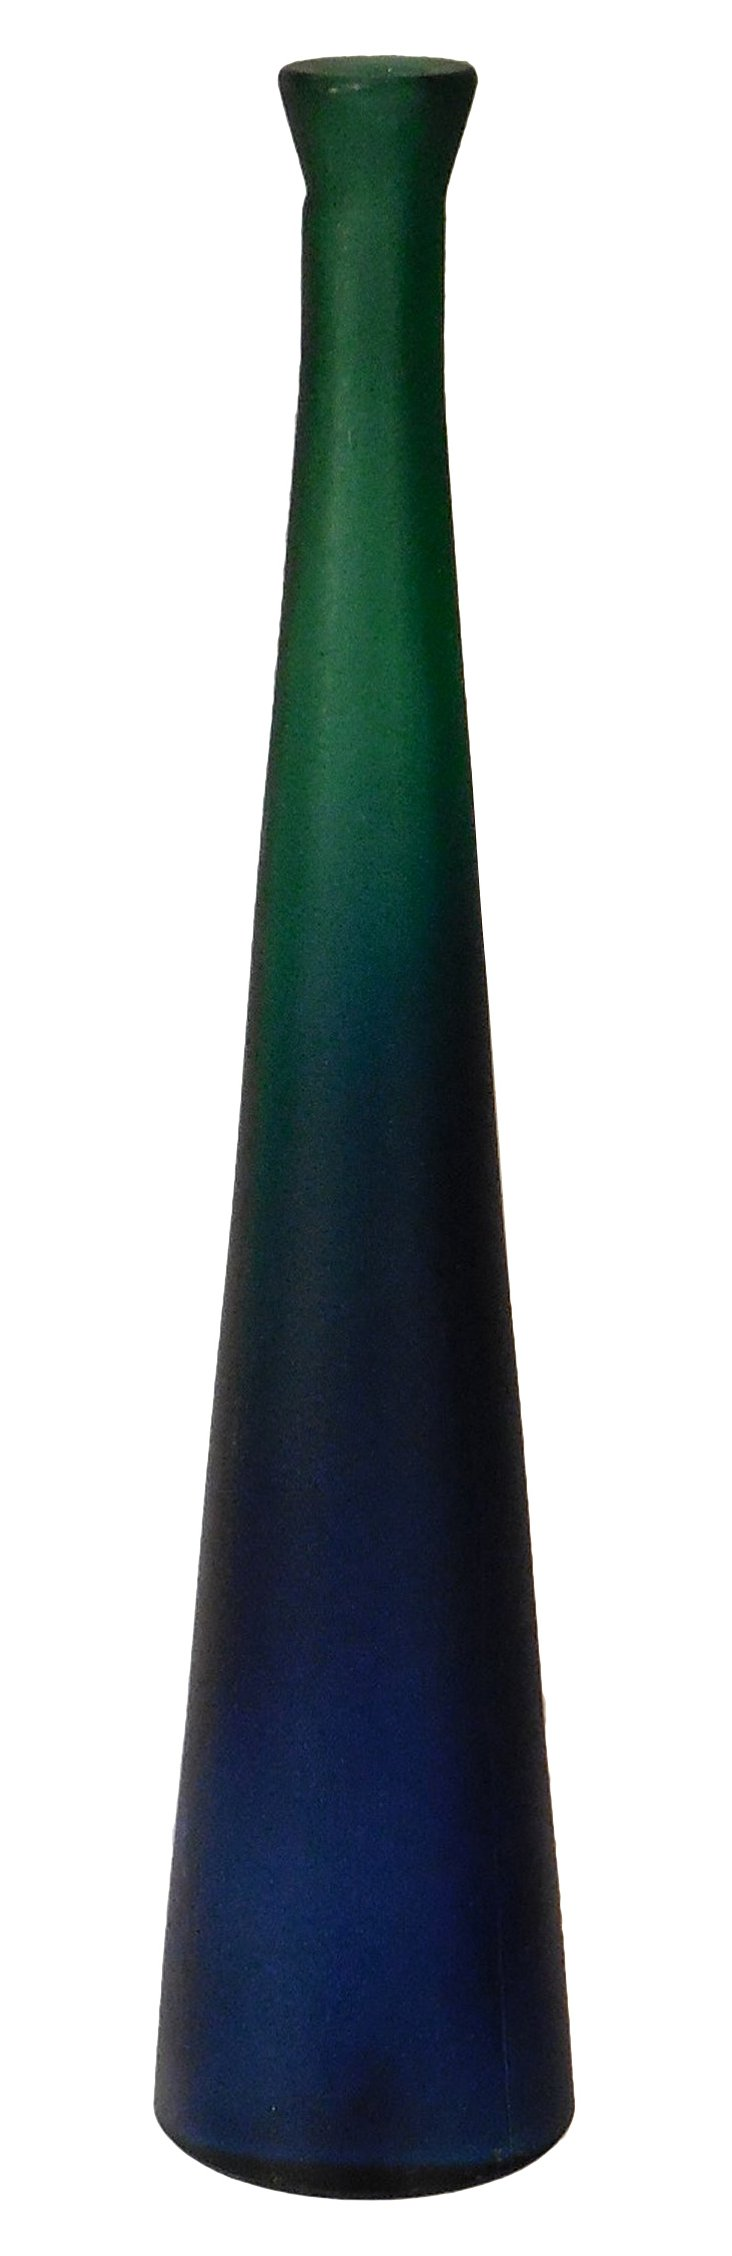 Blue Fades to Green Ombre Bottle